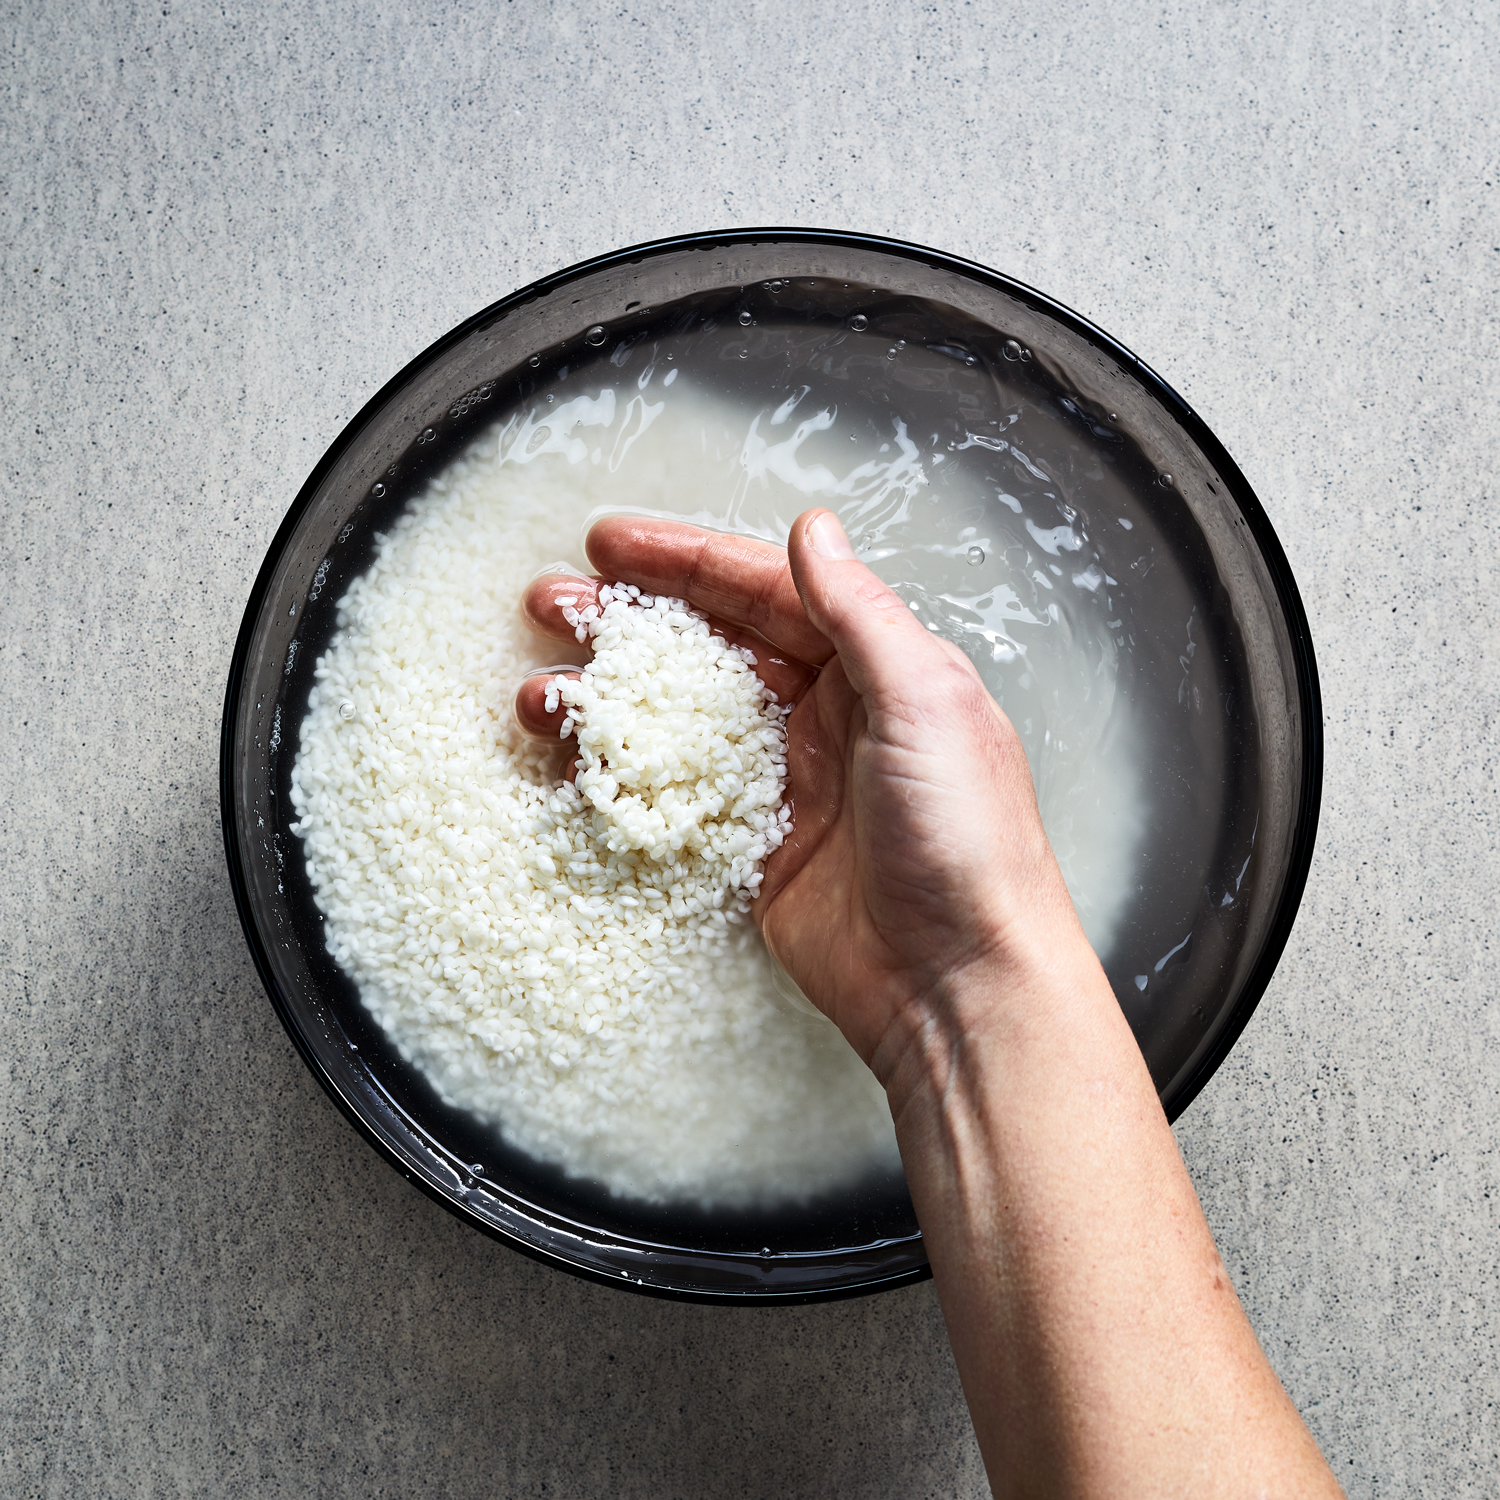 How To Make California Bowl | Step 1 Rinse the Rice